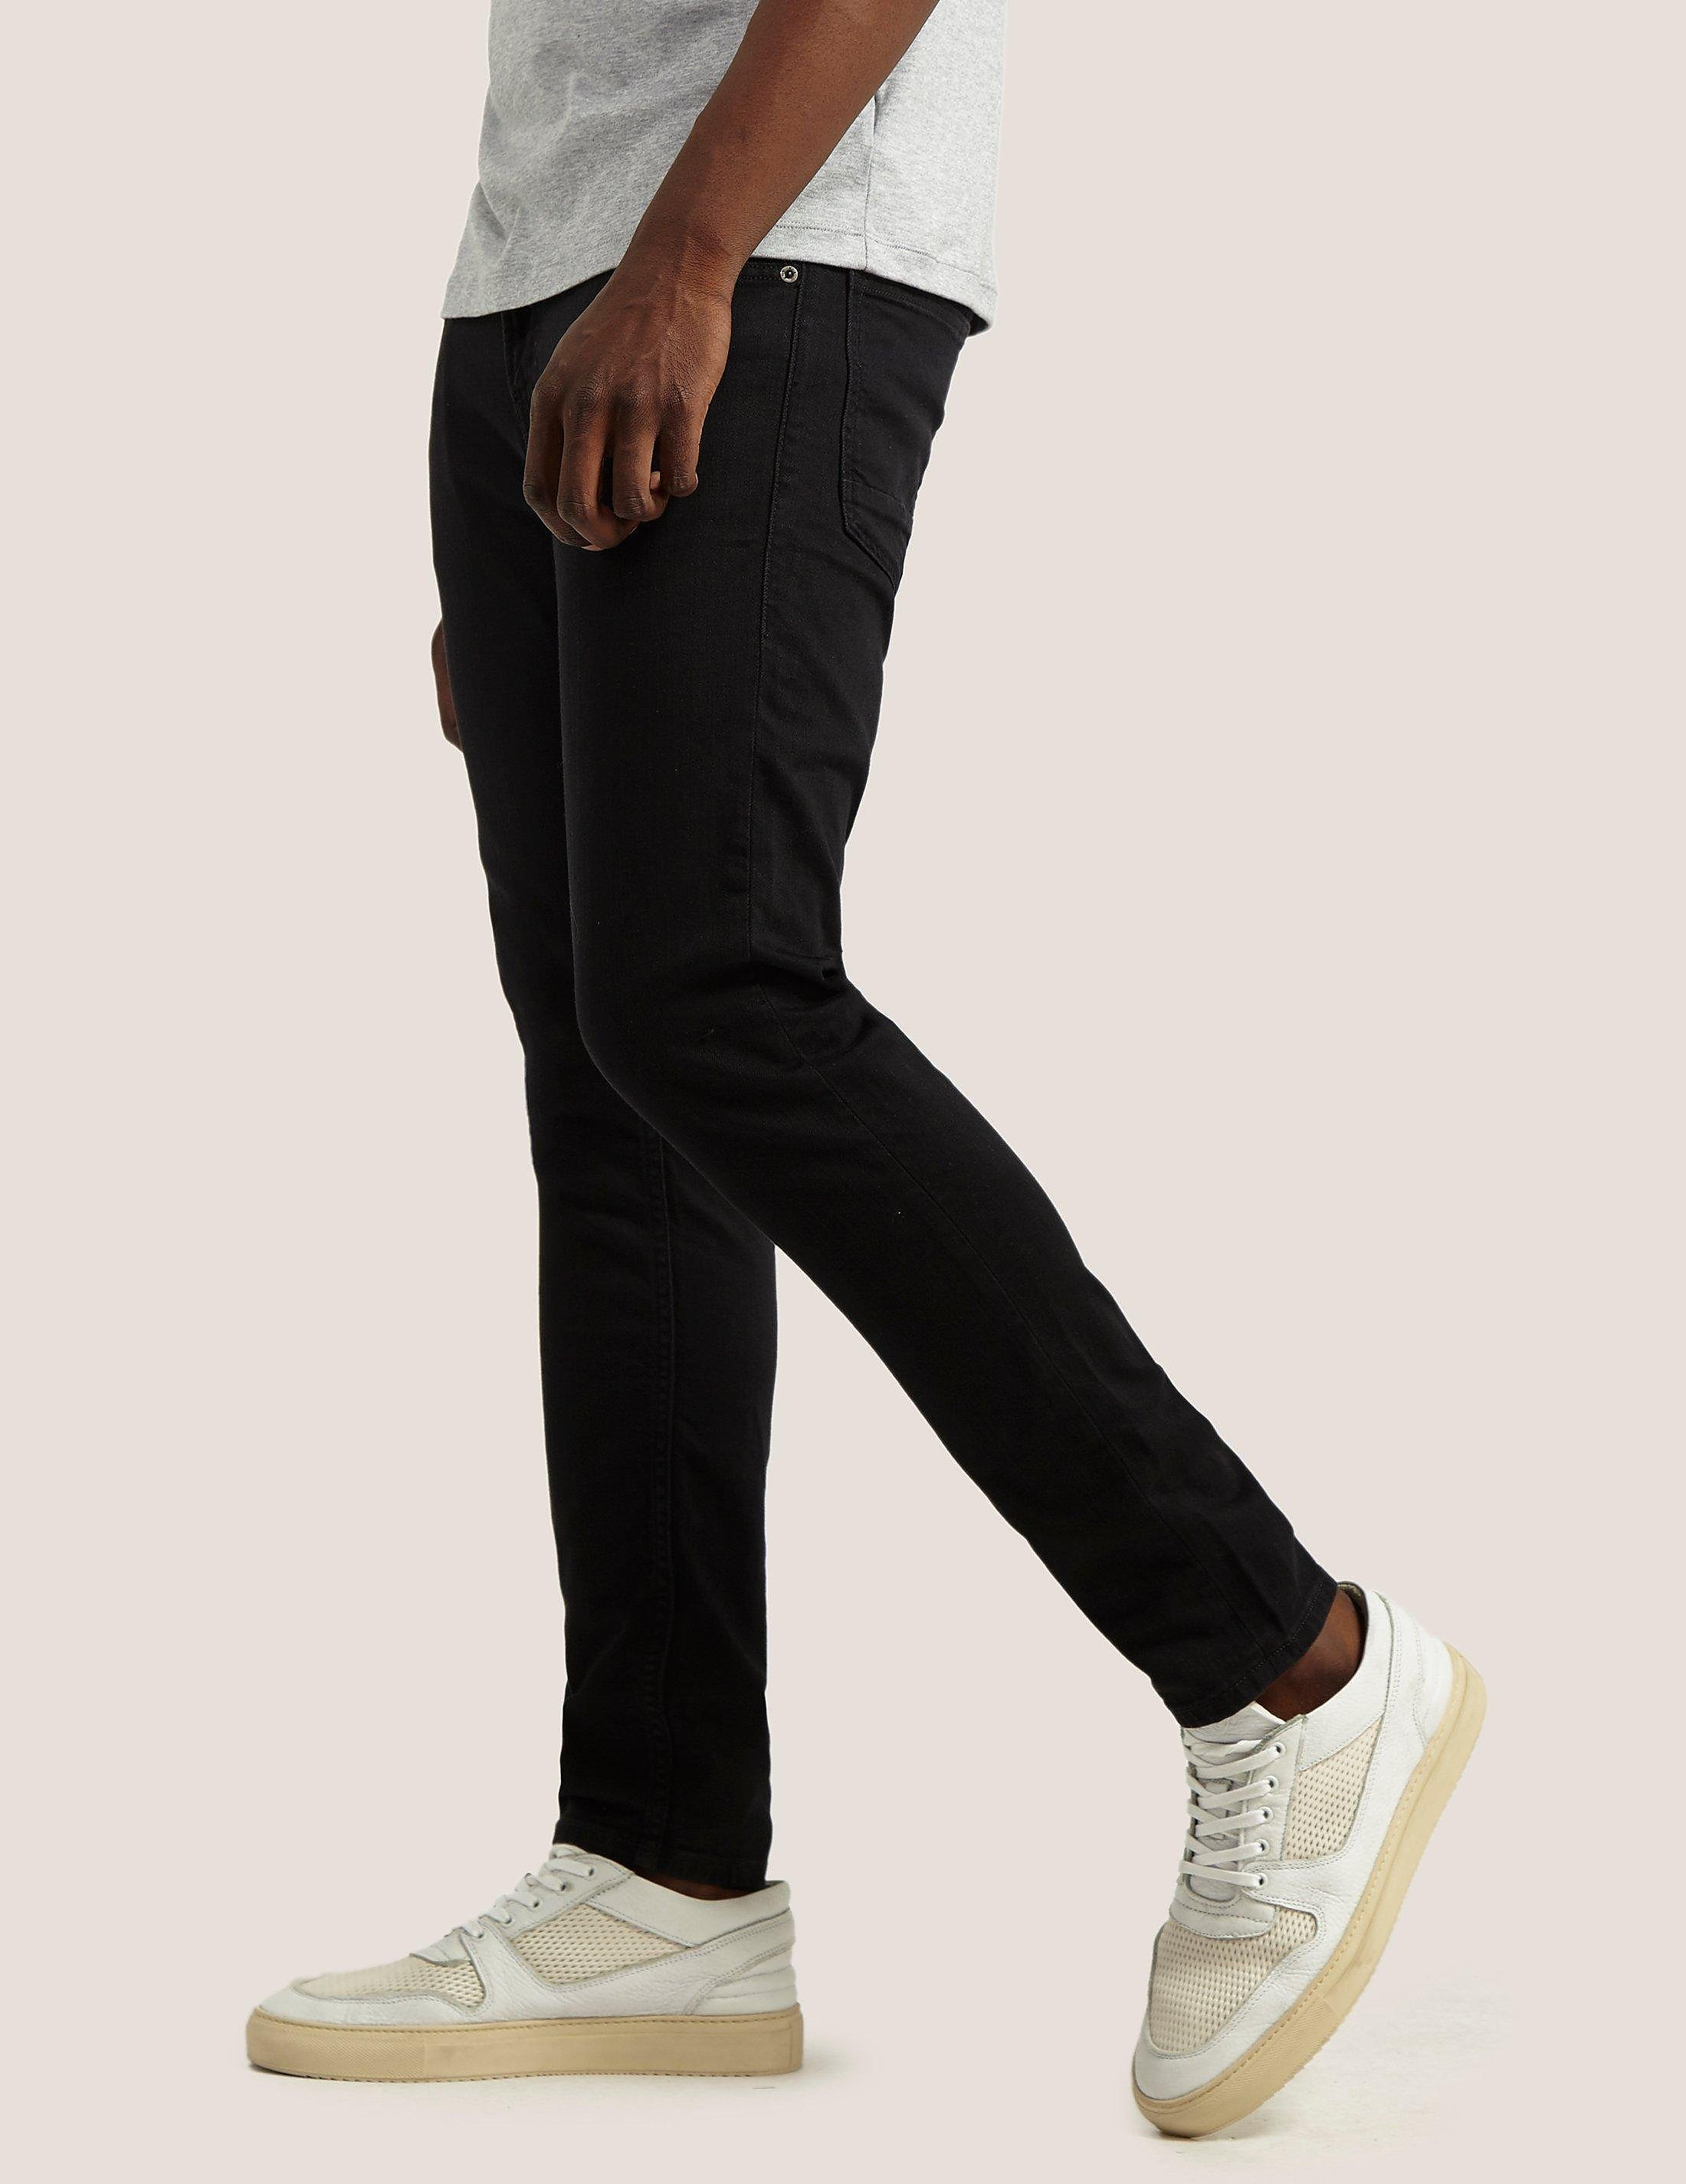 Scotch & Soda Skim The Nero Jeans